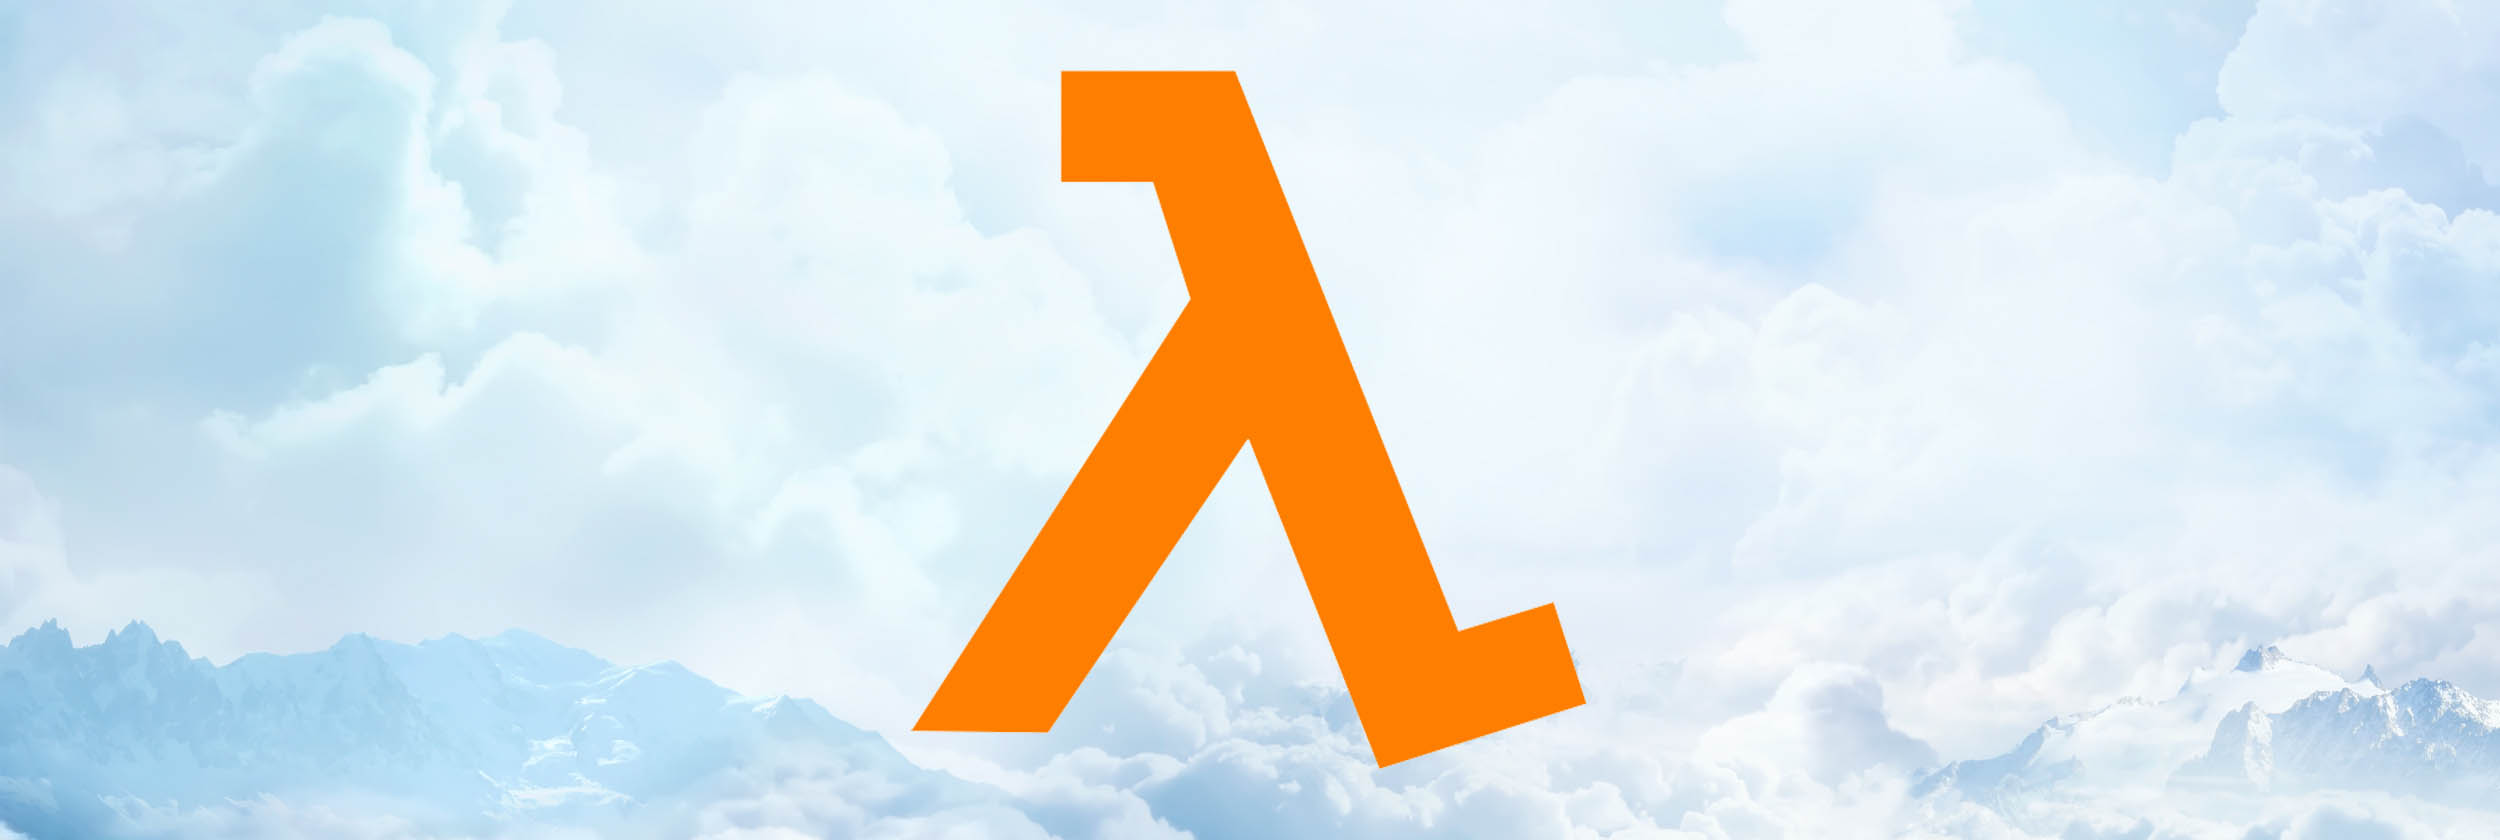 Lambda layers for Python runtime – Nordcloud